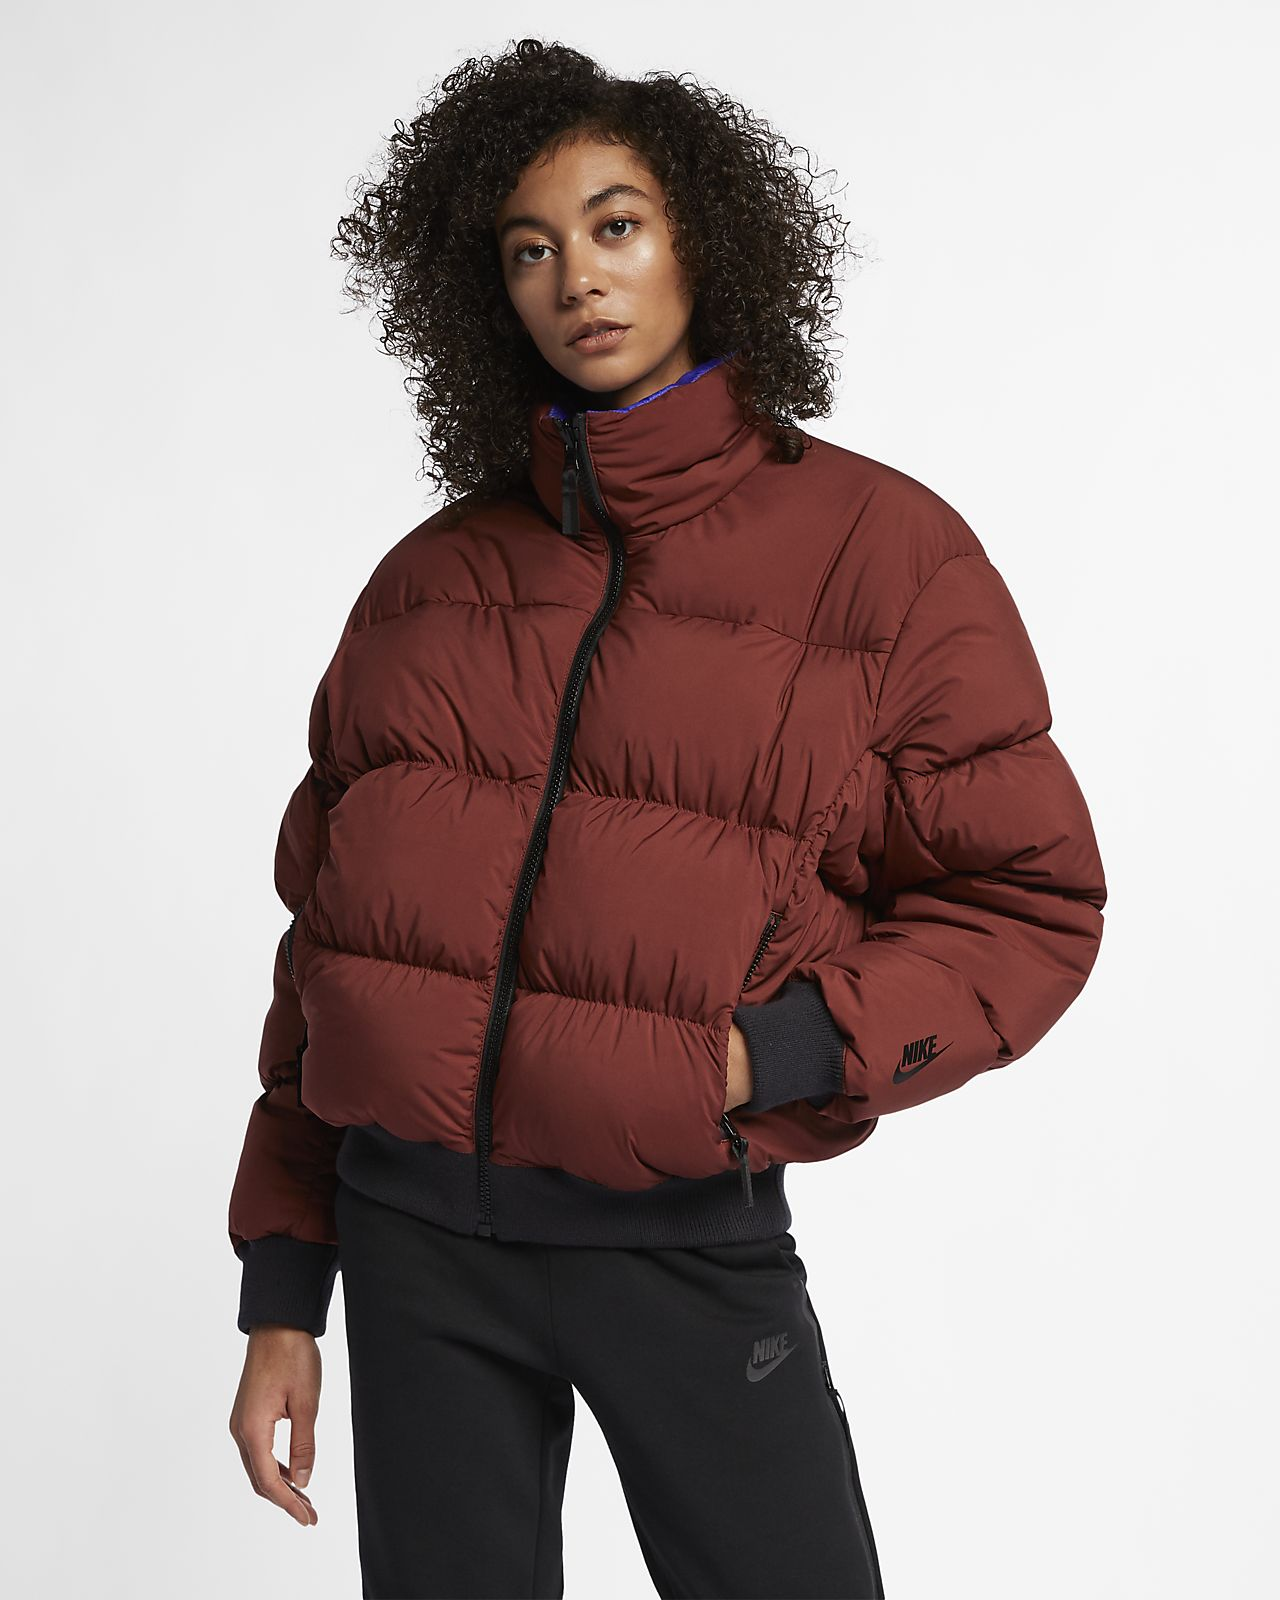 NikeLab Collection Puffer 女子夹克